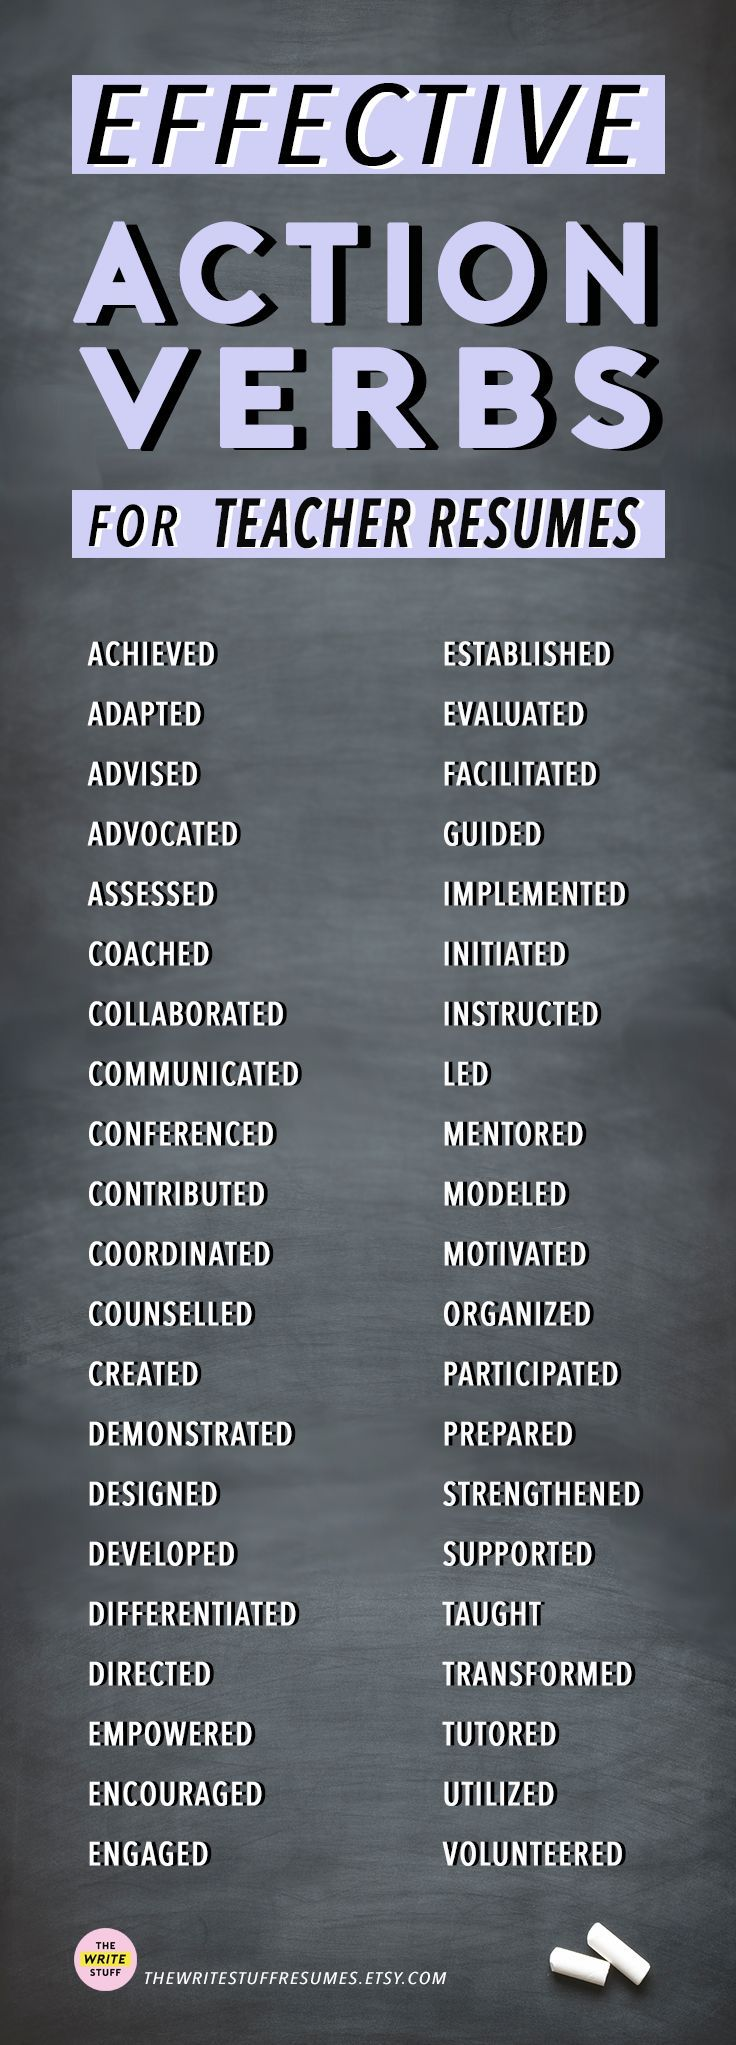 Best 25 Resume Action Words Ideas On Pinterest Resume Key Words